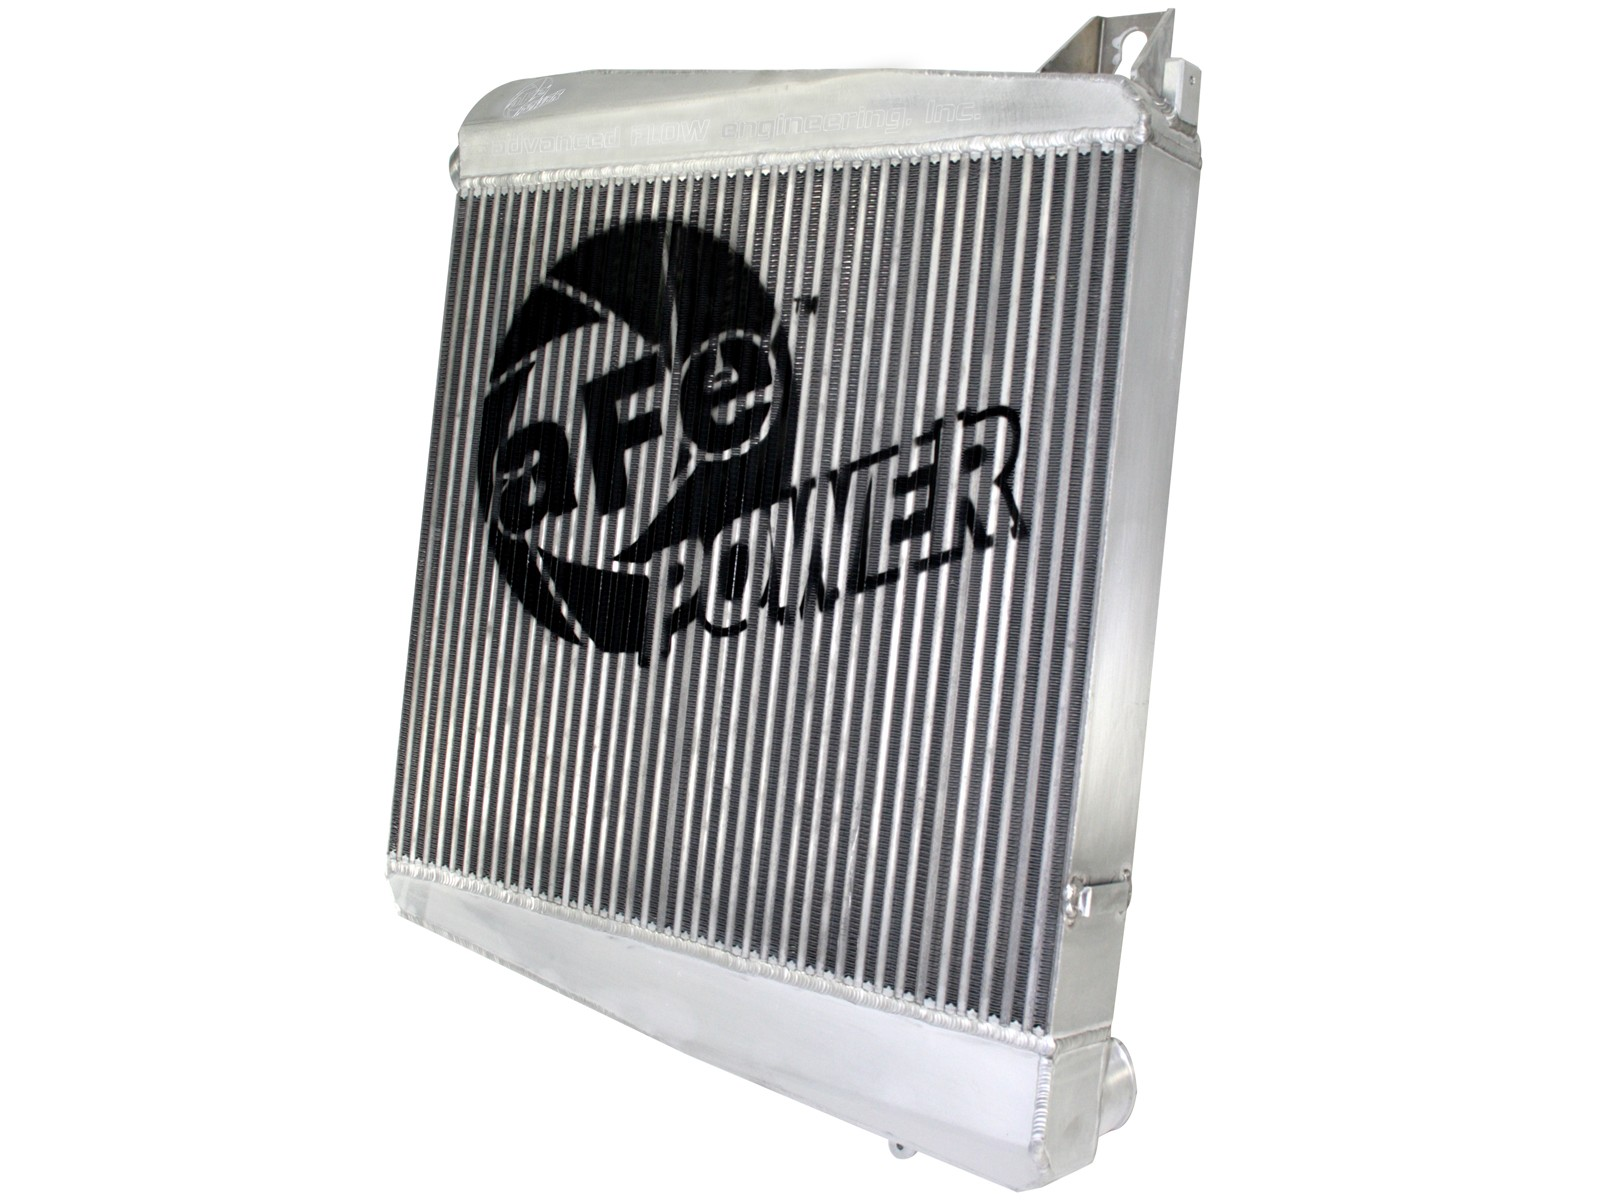 aFe POWER 46-20071 BladeRunner GT Series Intercooler